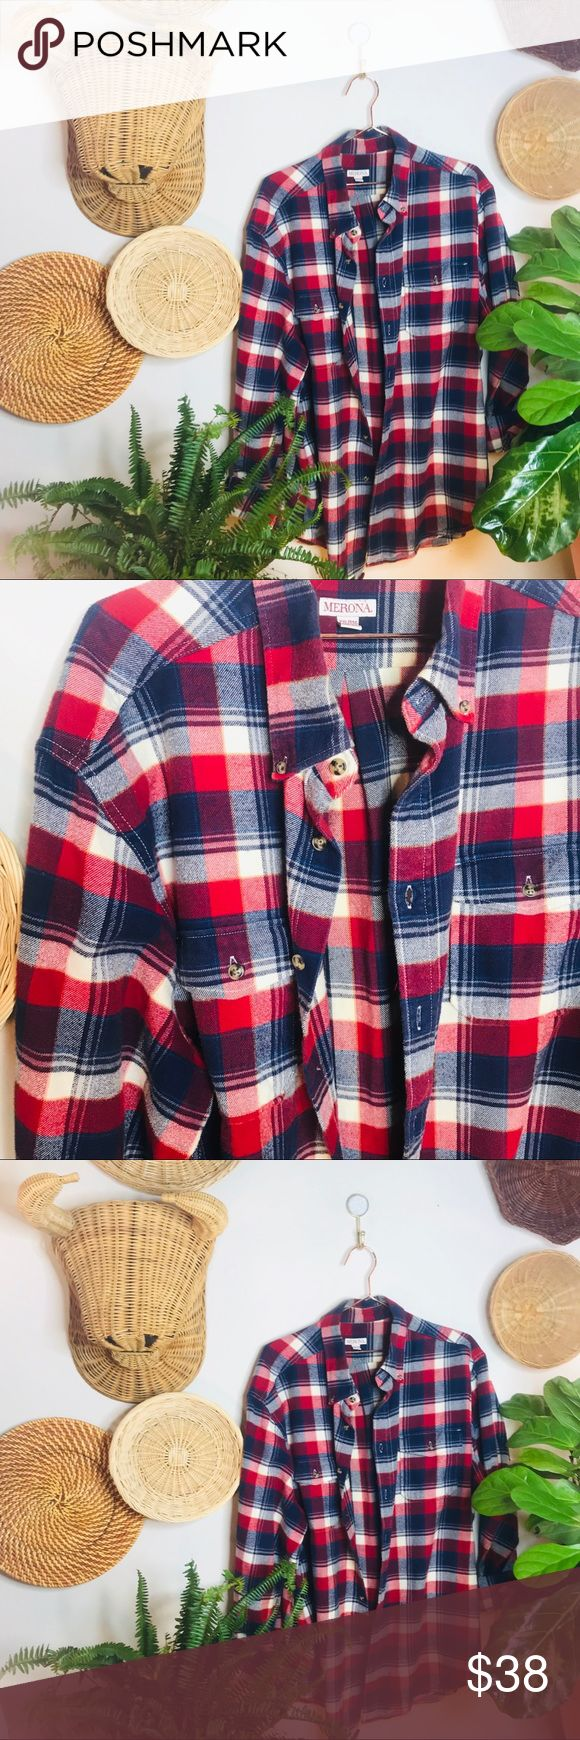 vtg vsco 90s boyfriend flannel button up popover vtg vsco 90s boyfriend flannel button up popover  • Tags say XXL but would fit a XL or large nicely...